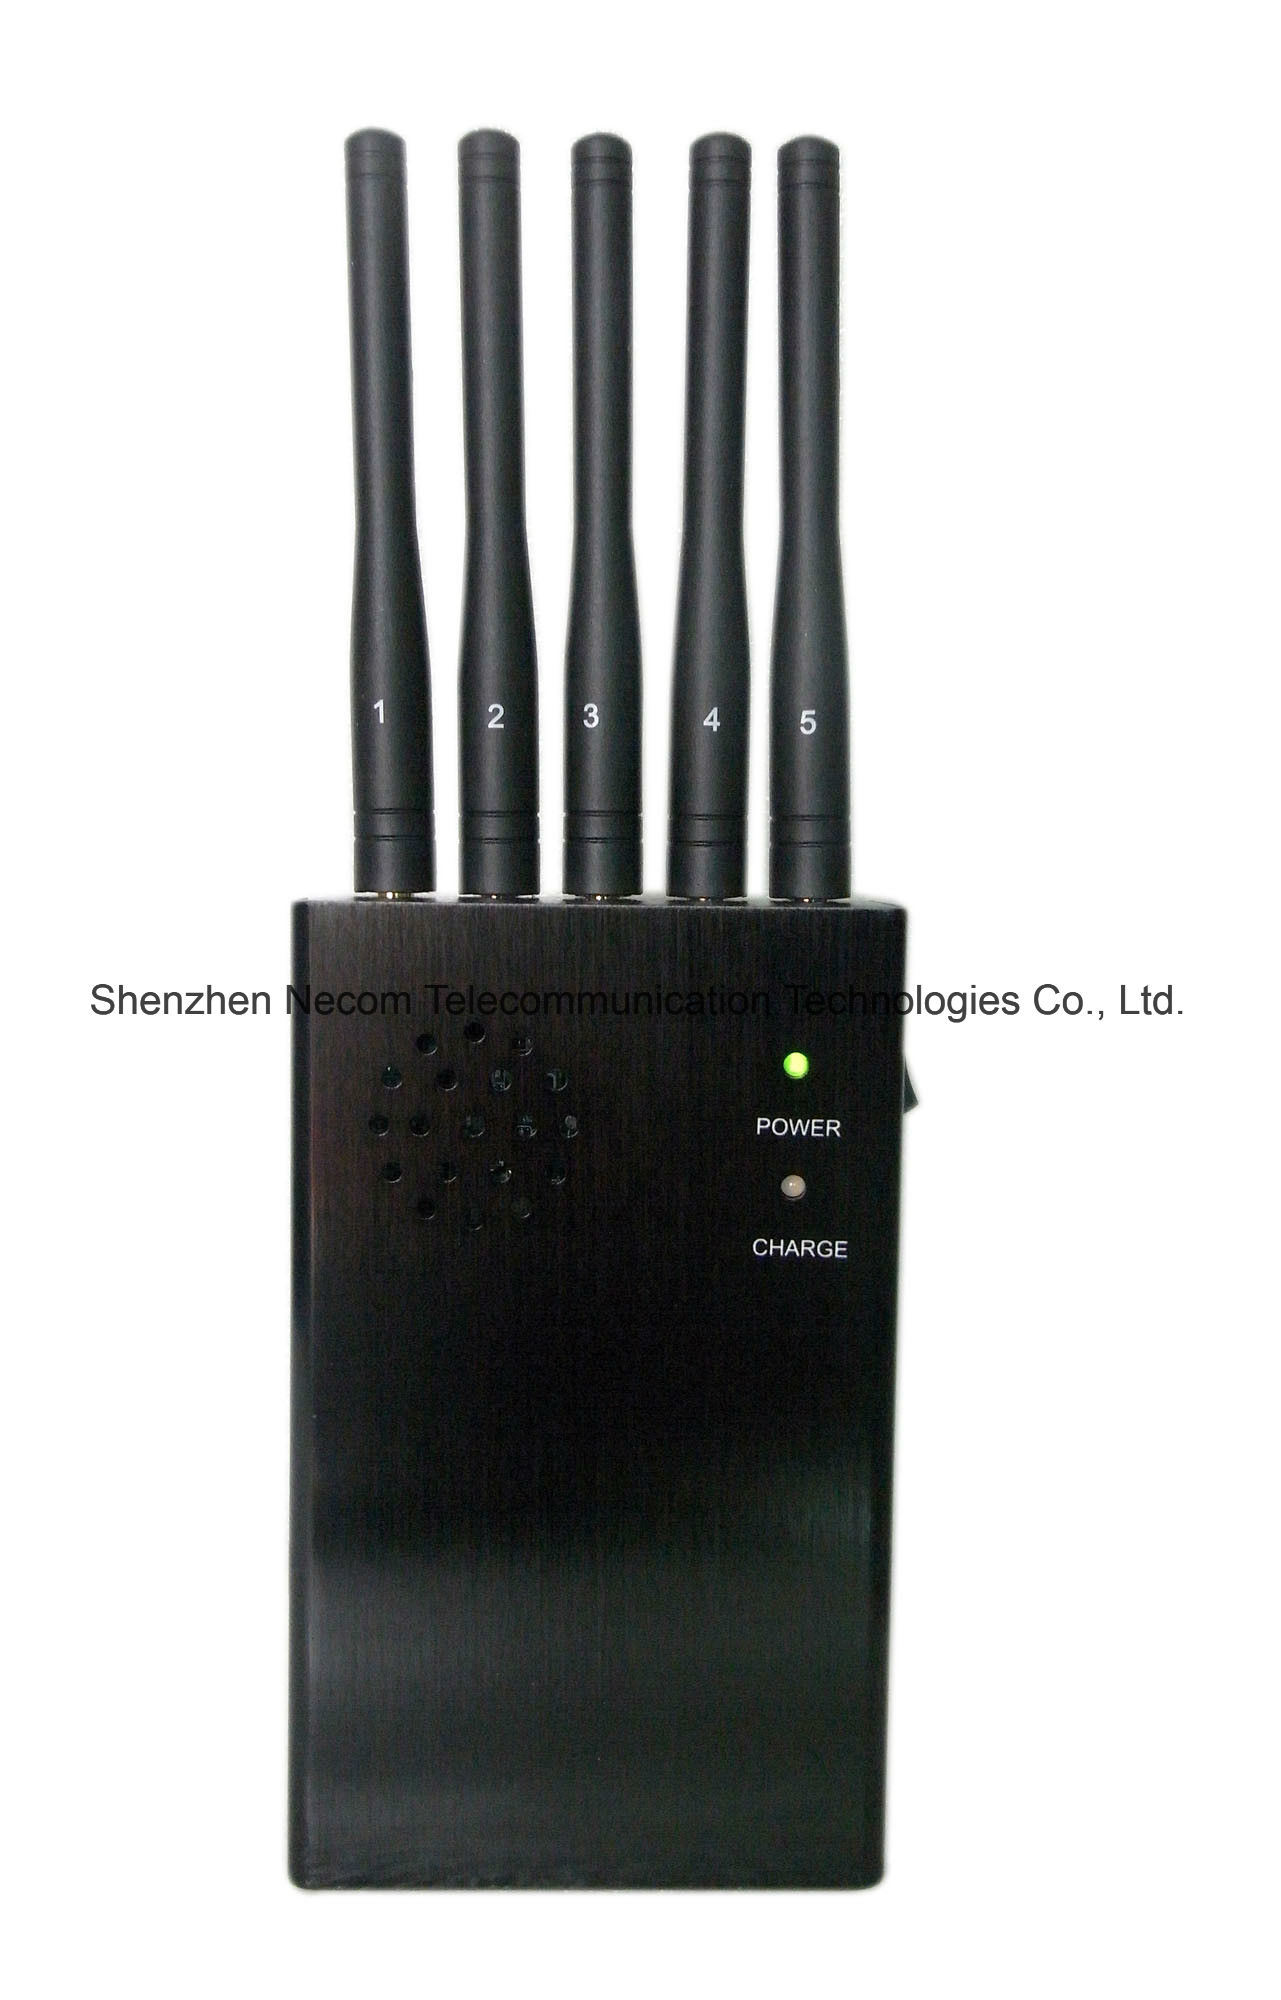 wifi jammer project based - China 5 Antenna Handheld Phone Jammer & WiFi Jammer & GPS Jammer, 5bands Handheld Jammer for Cellphone, Wi-Fi, 433, 315 Remote Control Jammer - China 5 Band Signal Blockers, Five Antennas Jammers